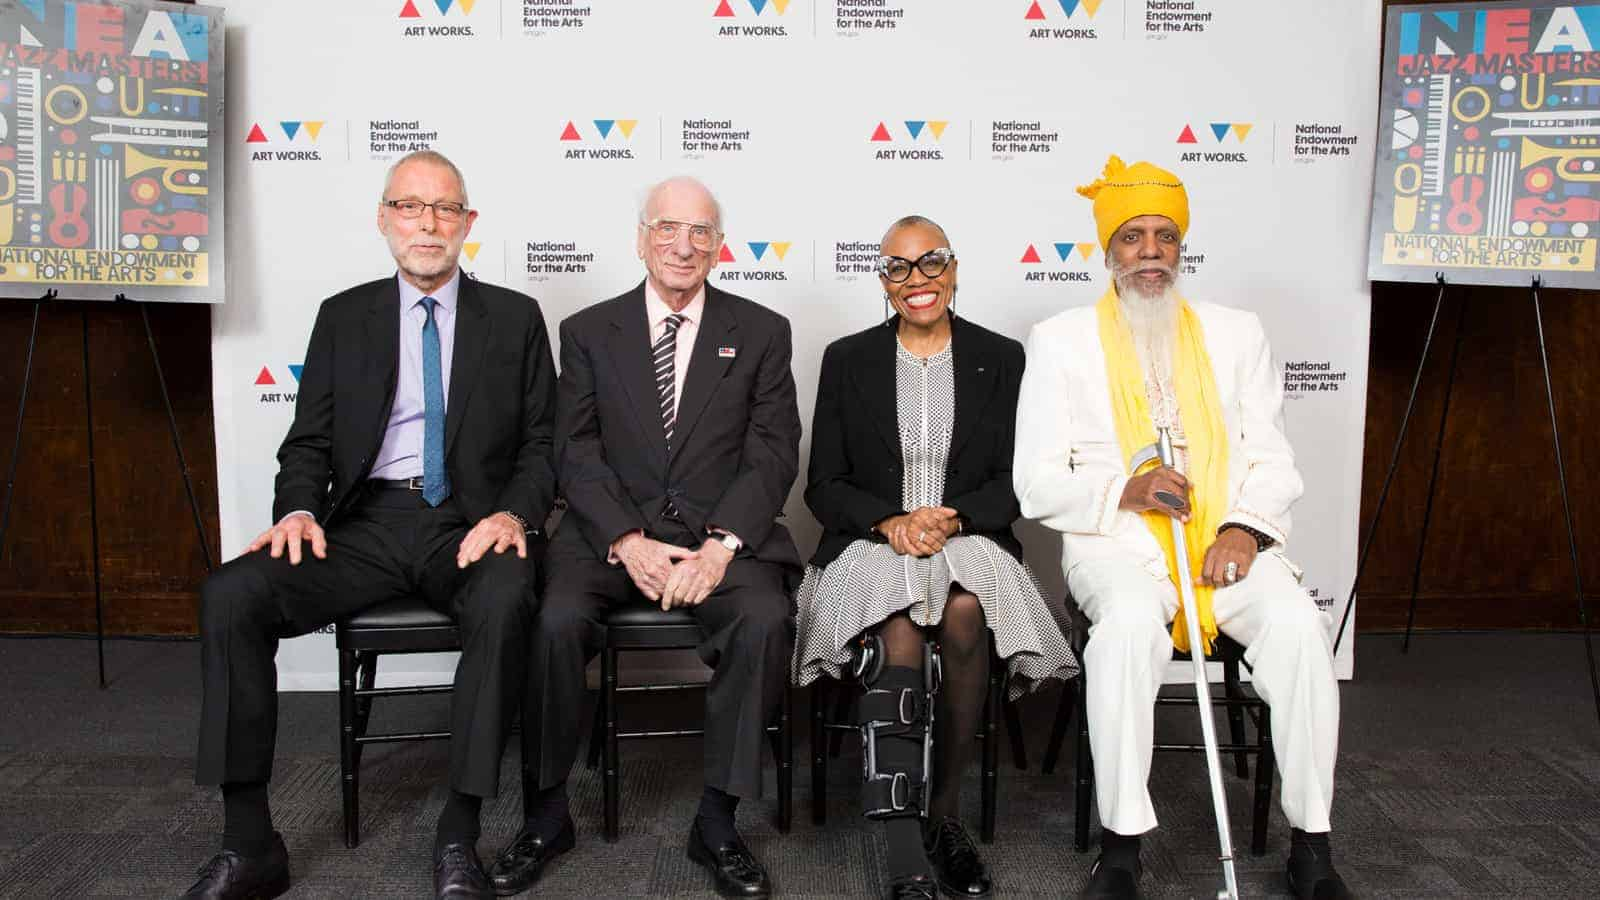 2017 NEA Jazz Masters Dave Holland, Dick Hyman, Dee Dee Bridgewater, and Dr. Lonnie Smith (not pictured: Ira Gitler)